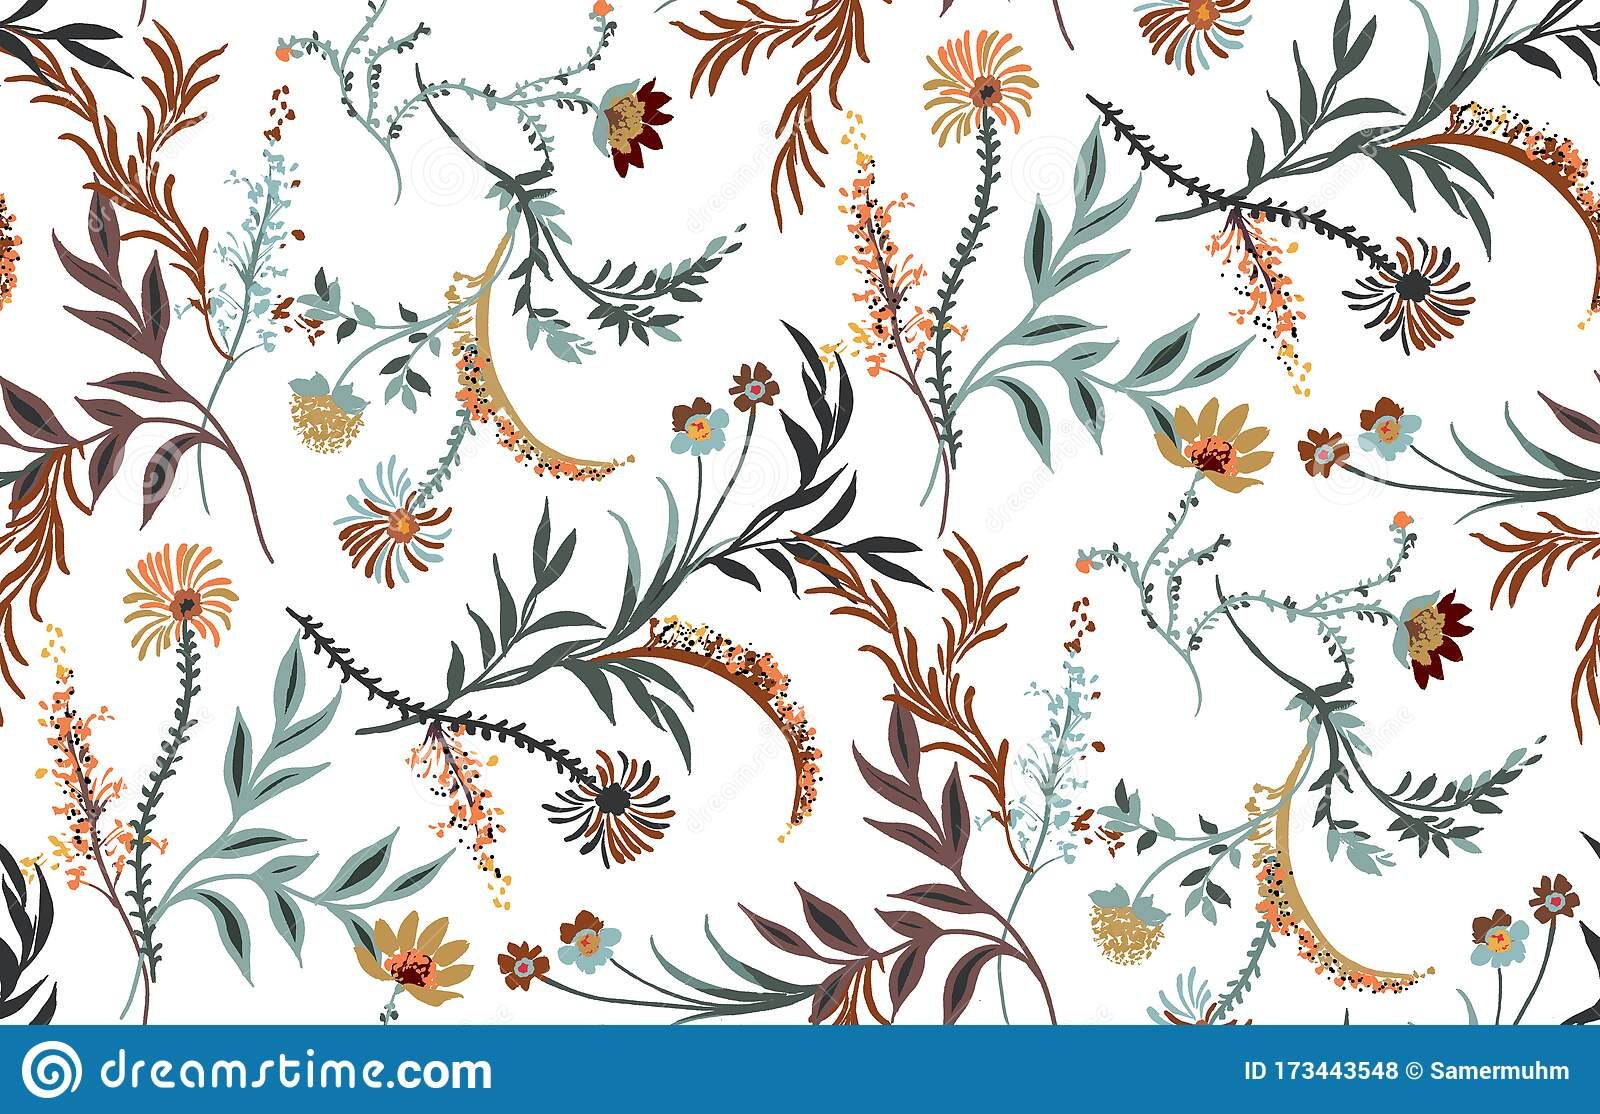 Seamless Watercolor Floral Design With White Background For